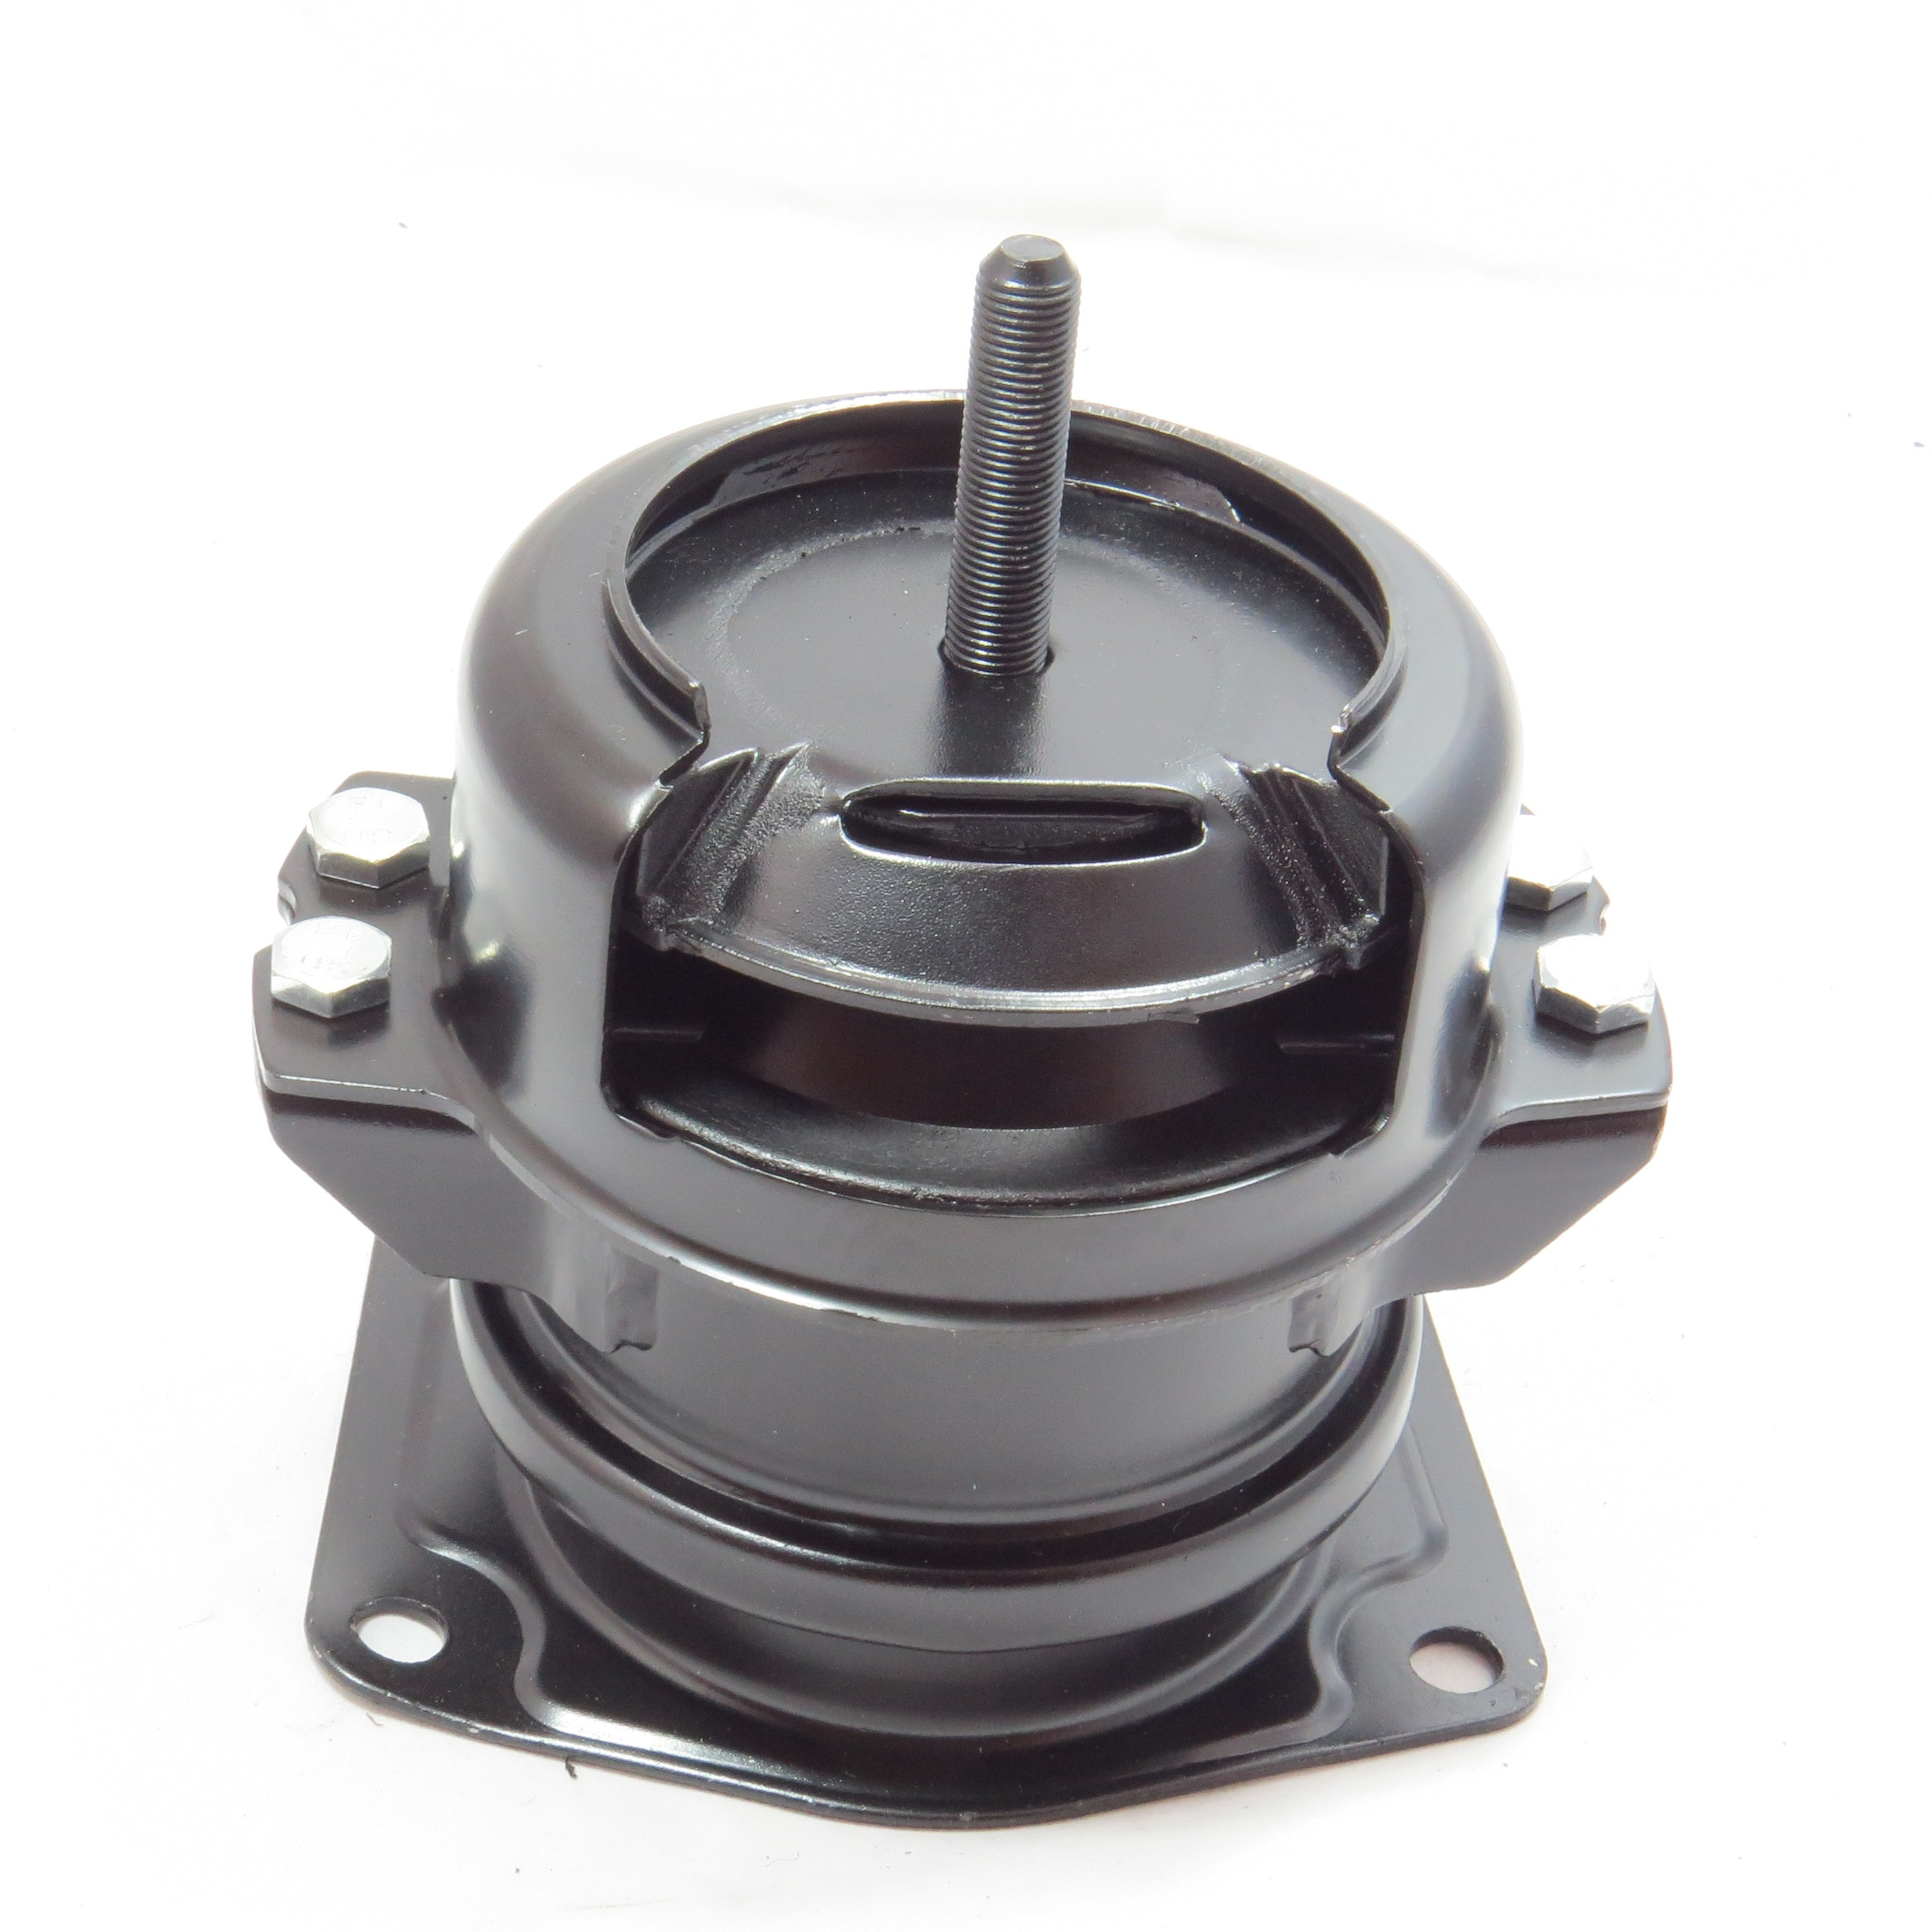 Front Motor Mount For TL, CL, MDX, Odyssey, Pilot